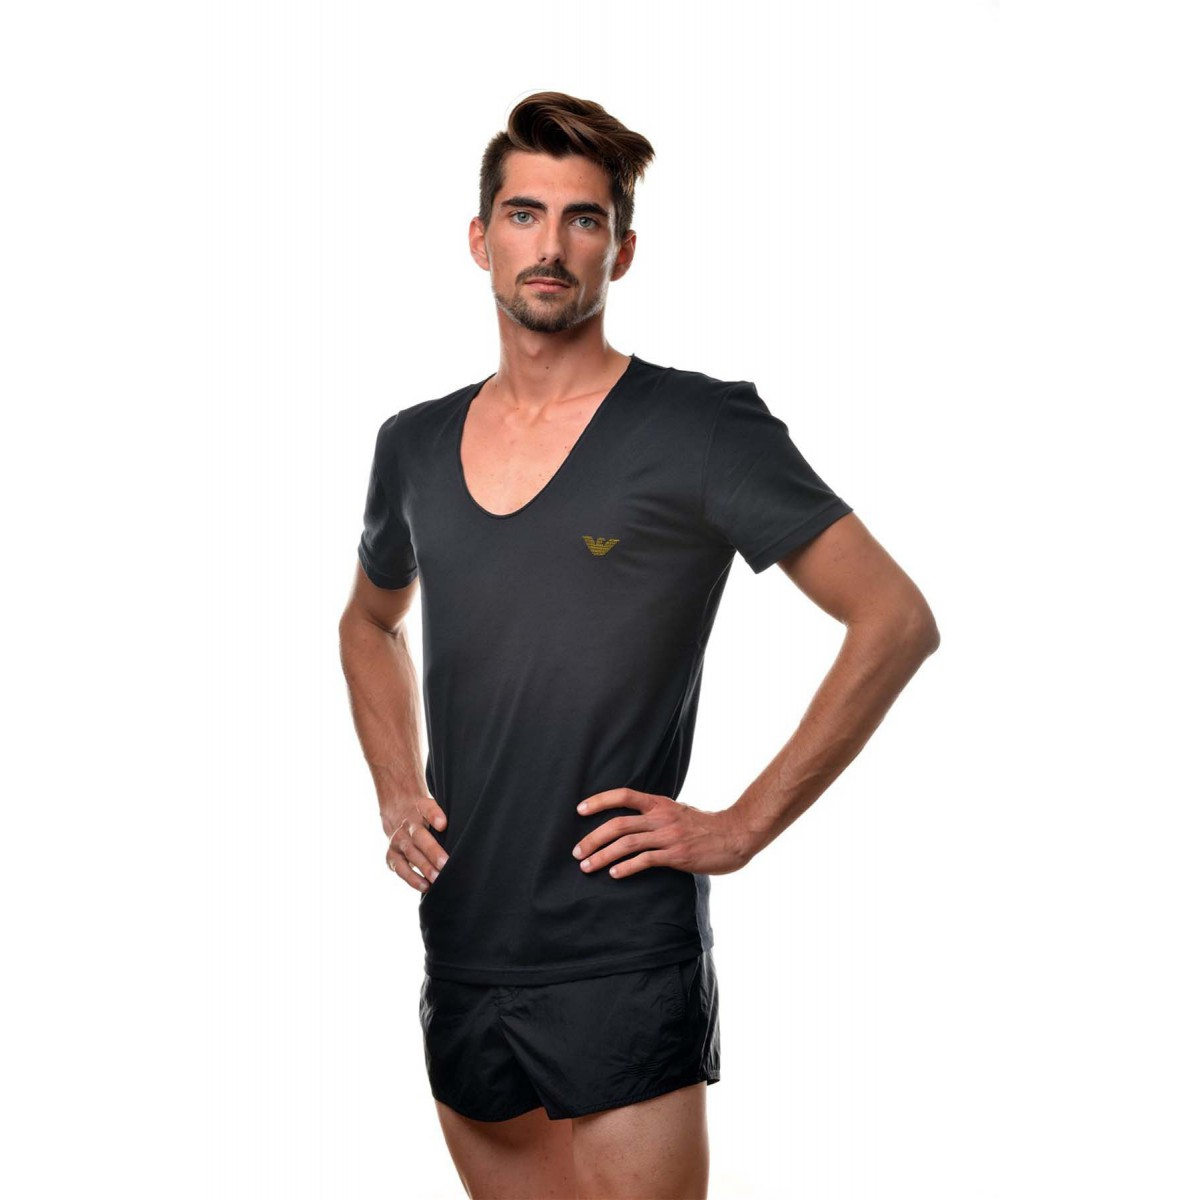 Emporio armani black tee shirt v neck V neck black t shirt